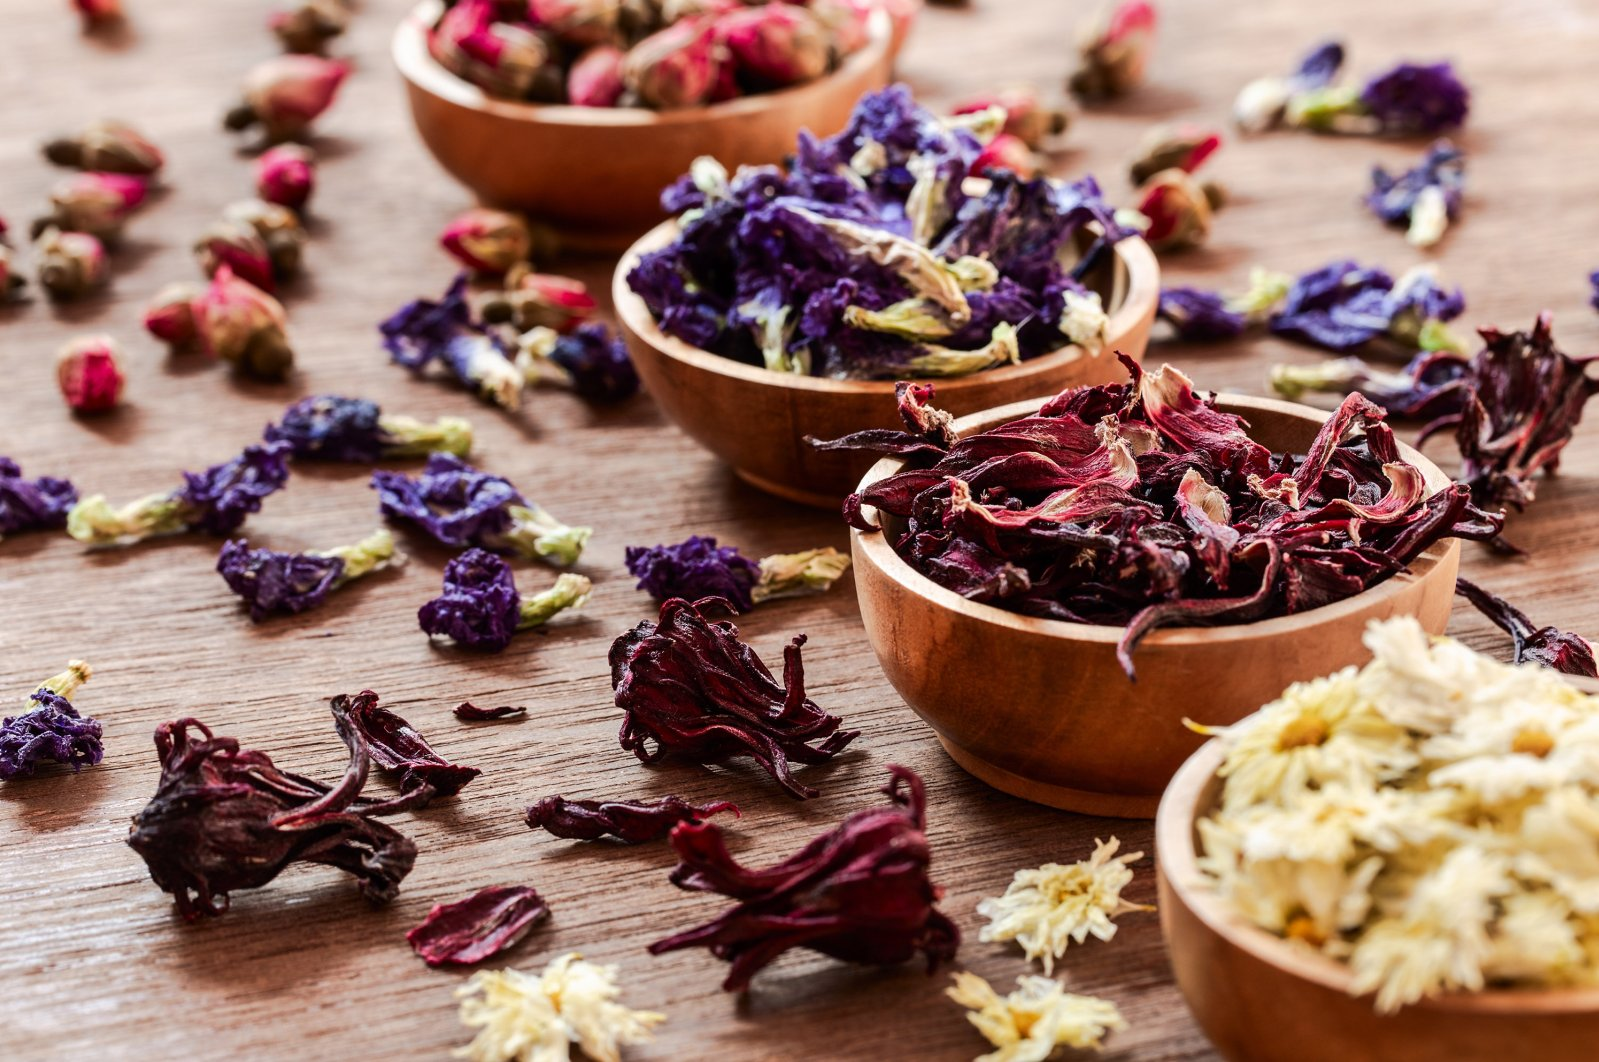 There are many dried herbs and flowers Turks use to consume as health-boosting teas. (Shutterstock Photo)